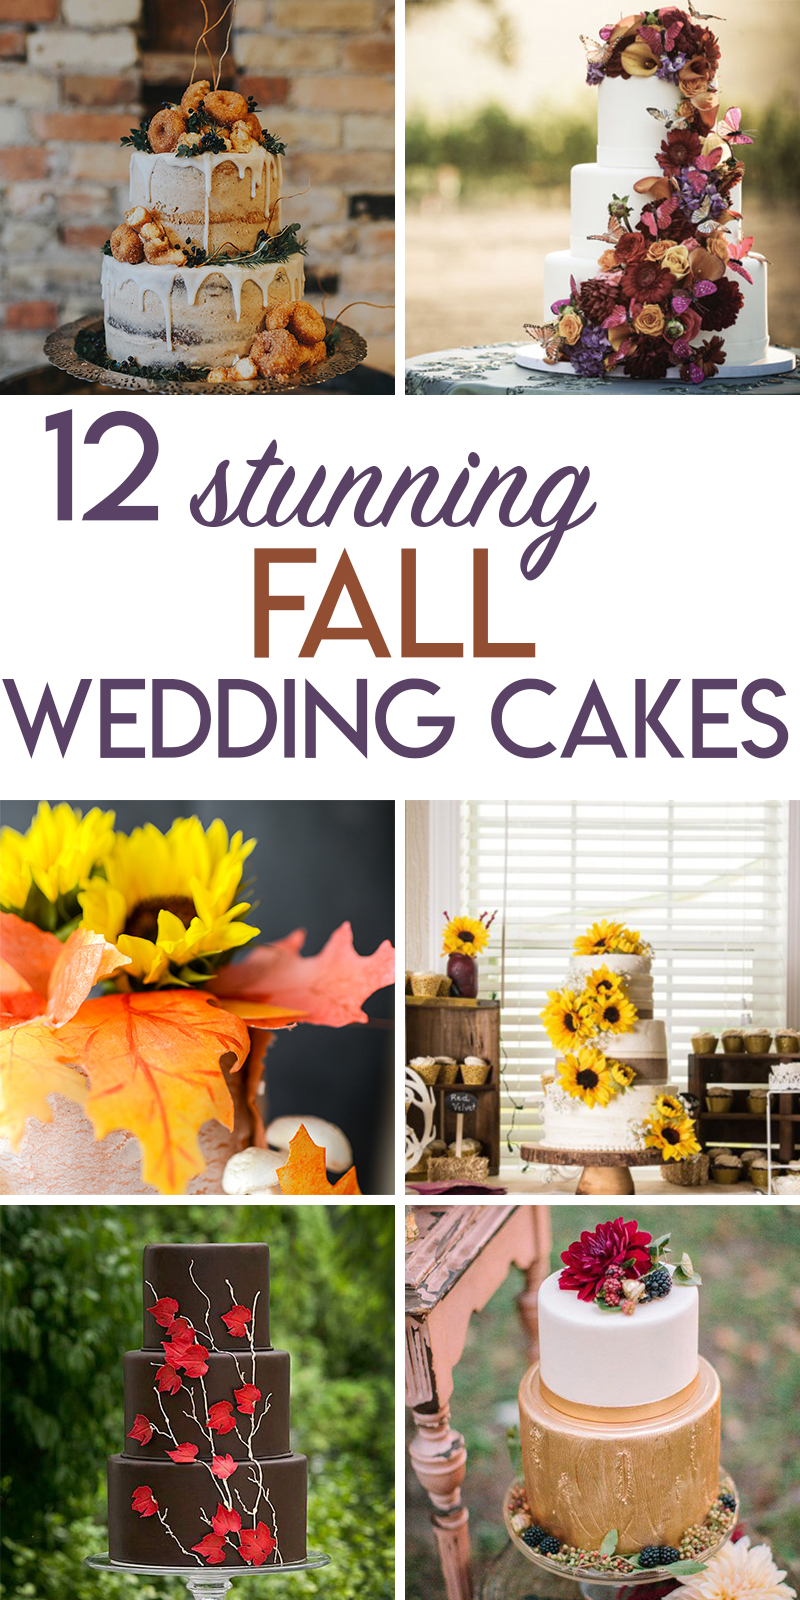 12 stunning fall wedding cakes